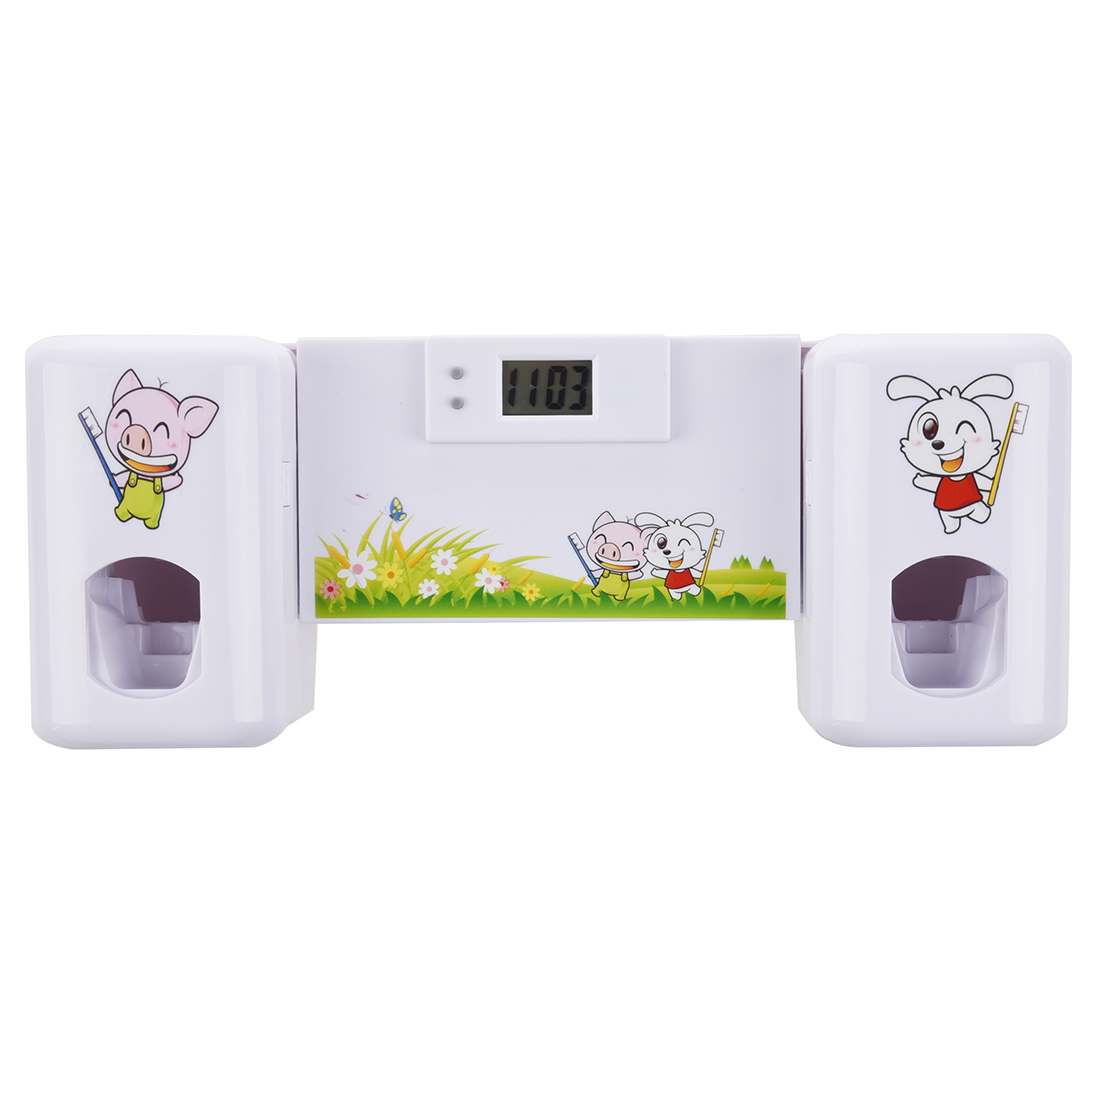 Automatic Toothpaste Dispenser Toothbrush Holder Set Wall Mount Rack Bath Oral-White Animals Bathroom accessories image